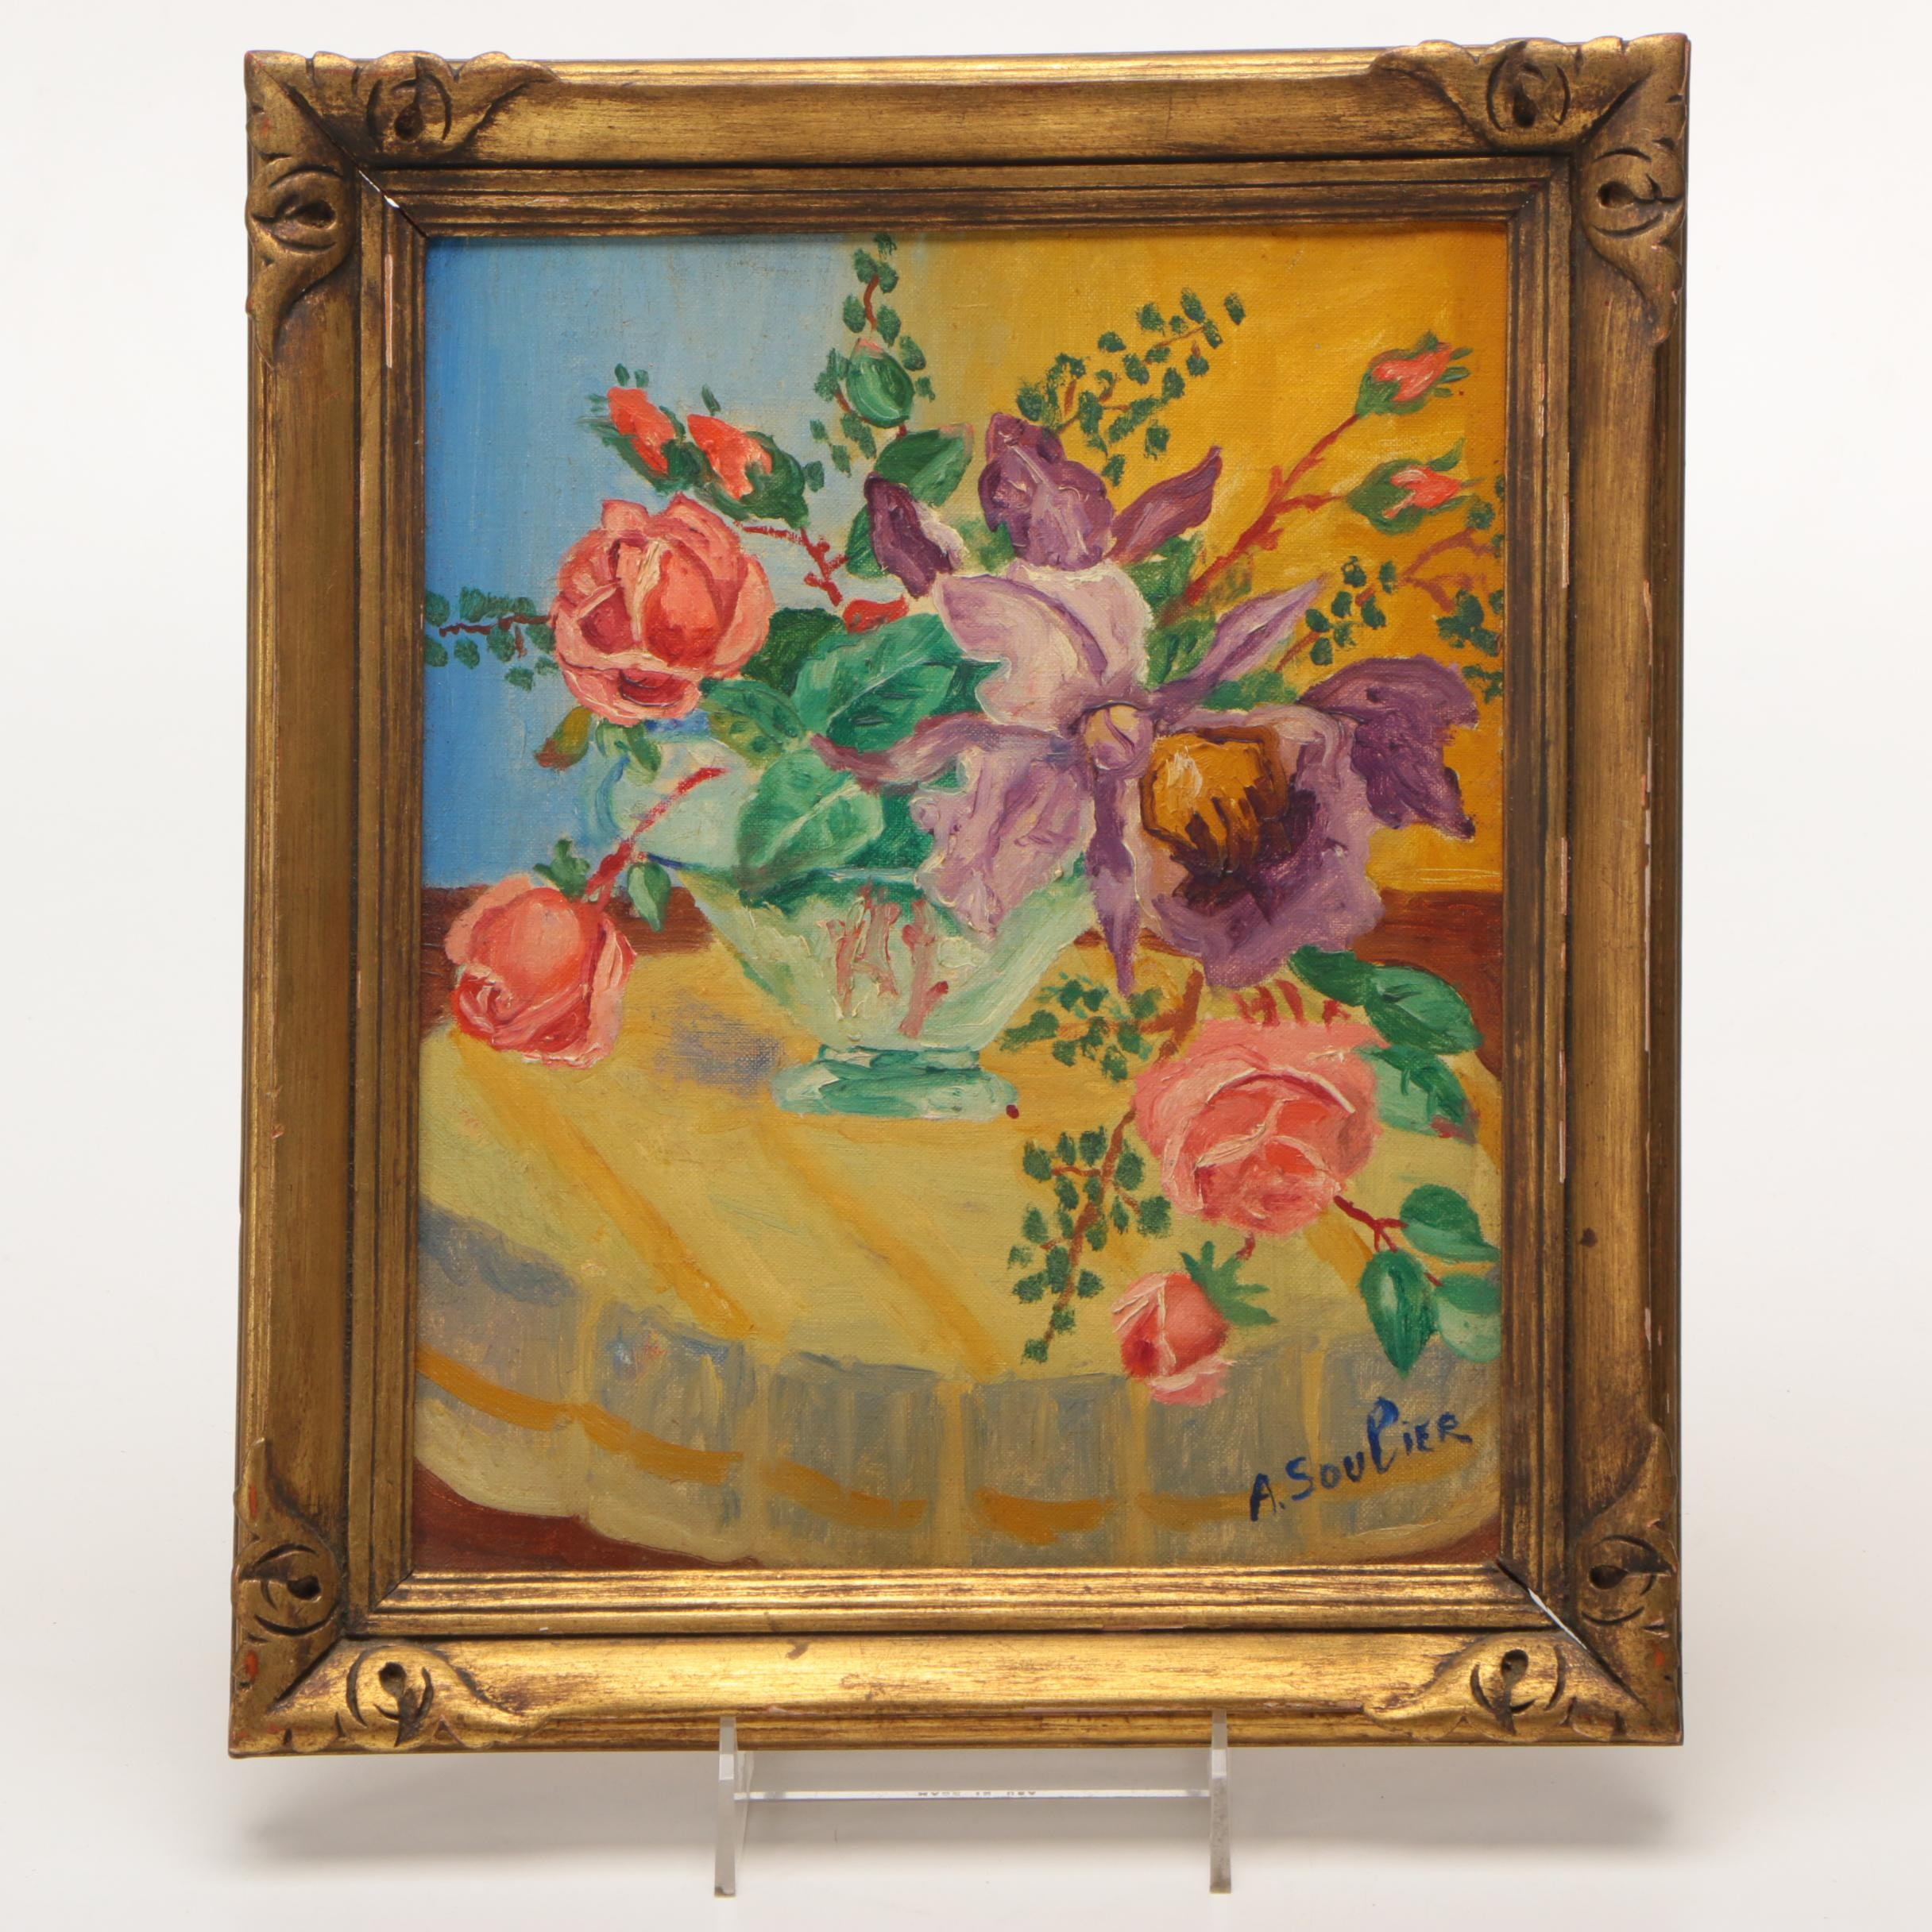 A. Soulier Original Oil on Canvas of Floral Still Life